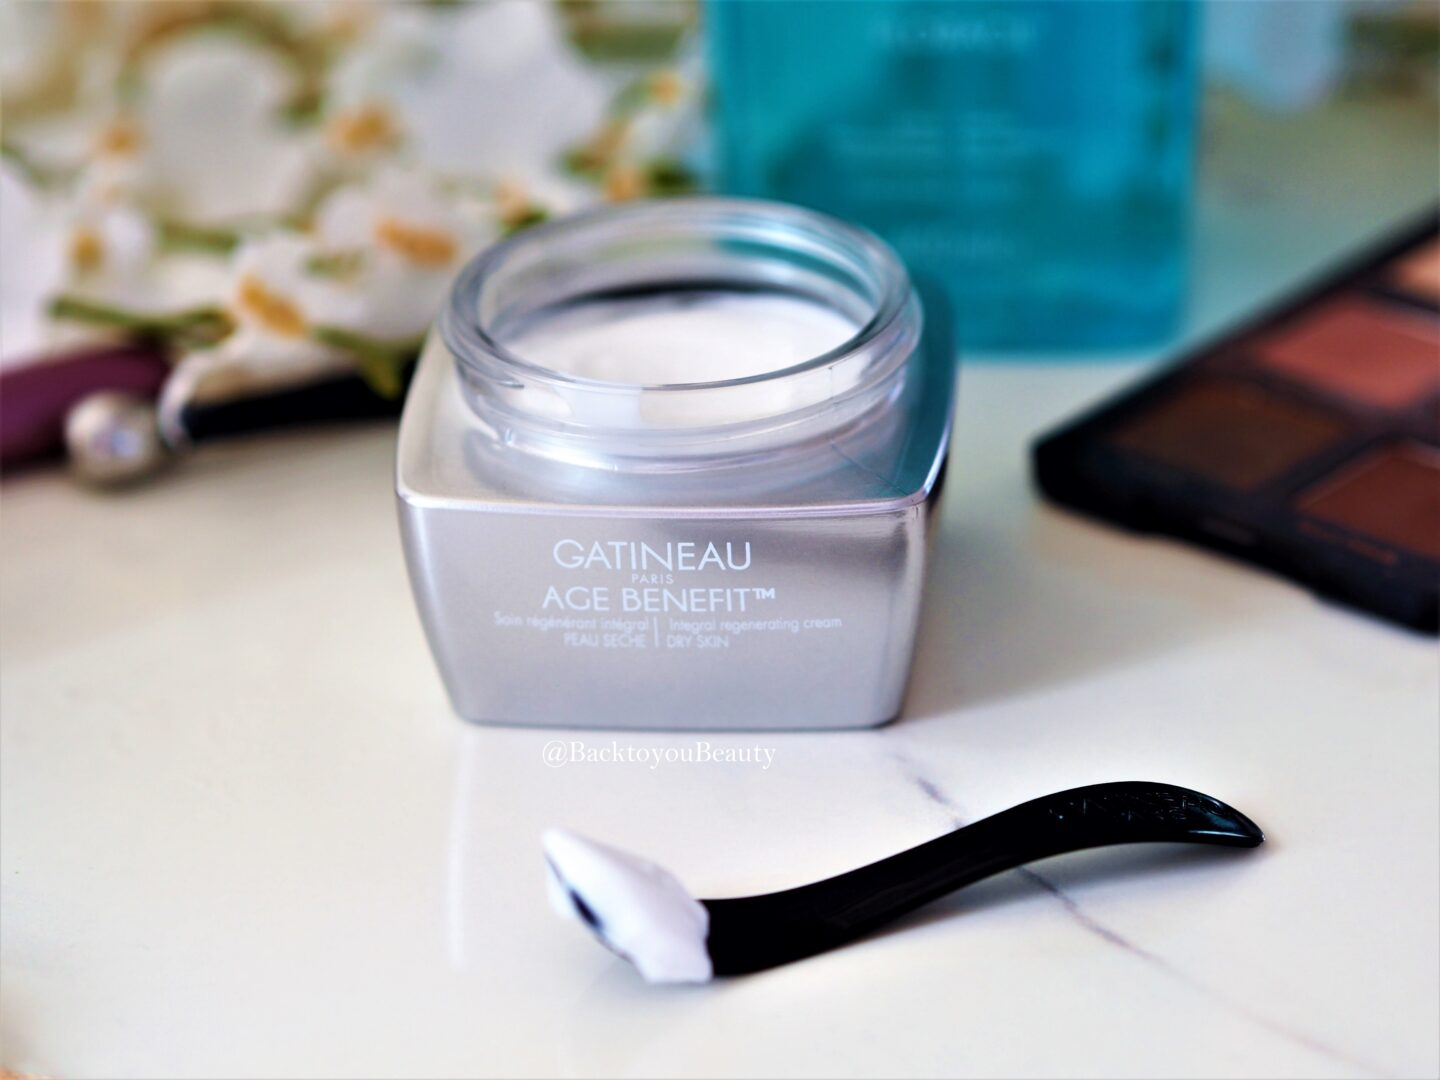 Gatineau Age benefit integral day cream